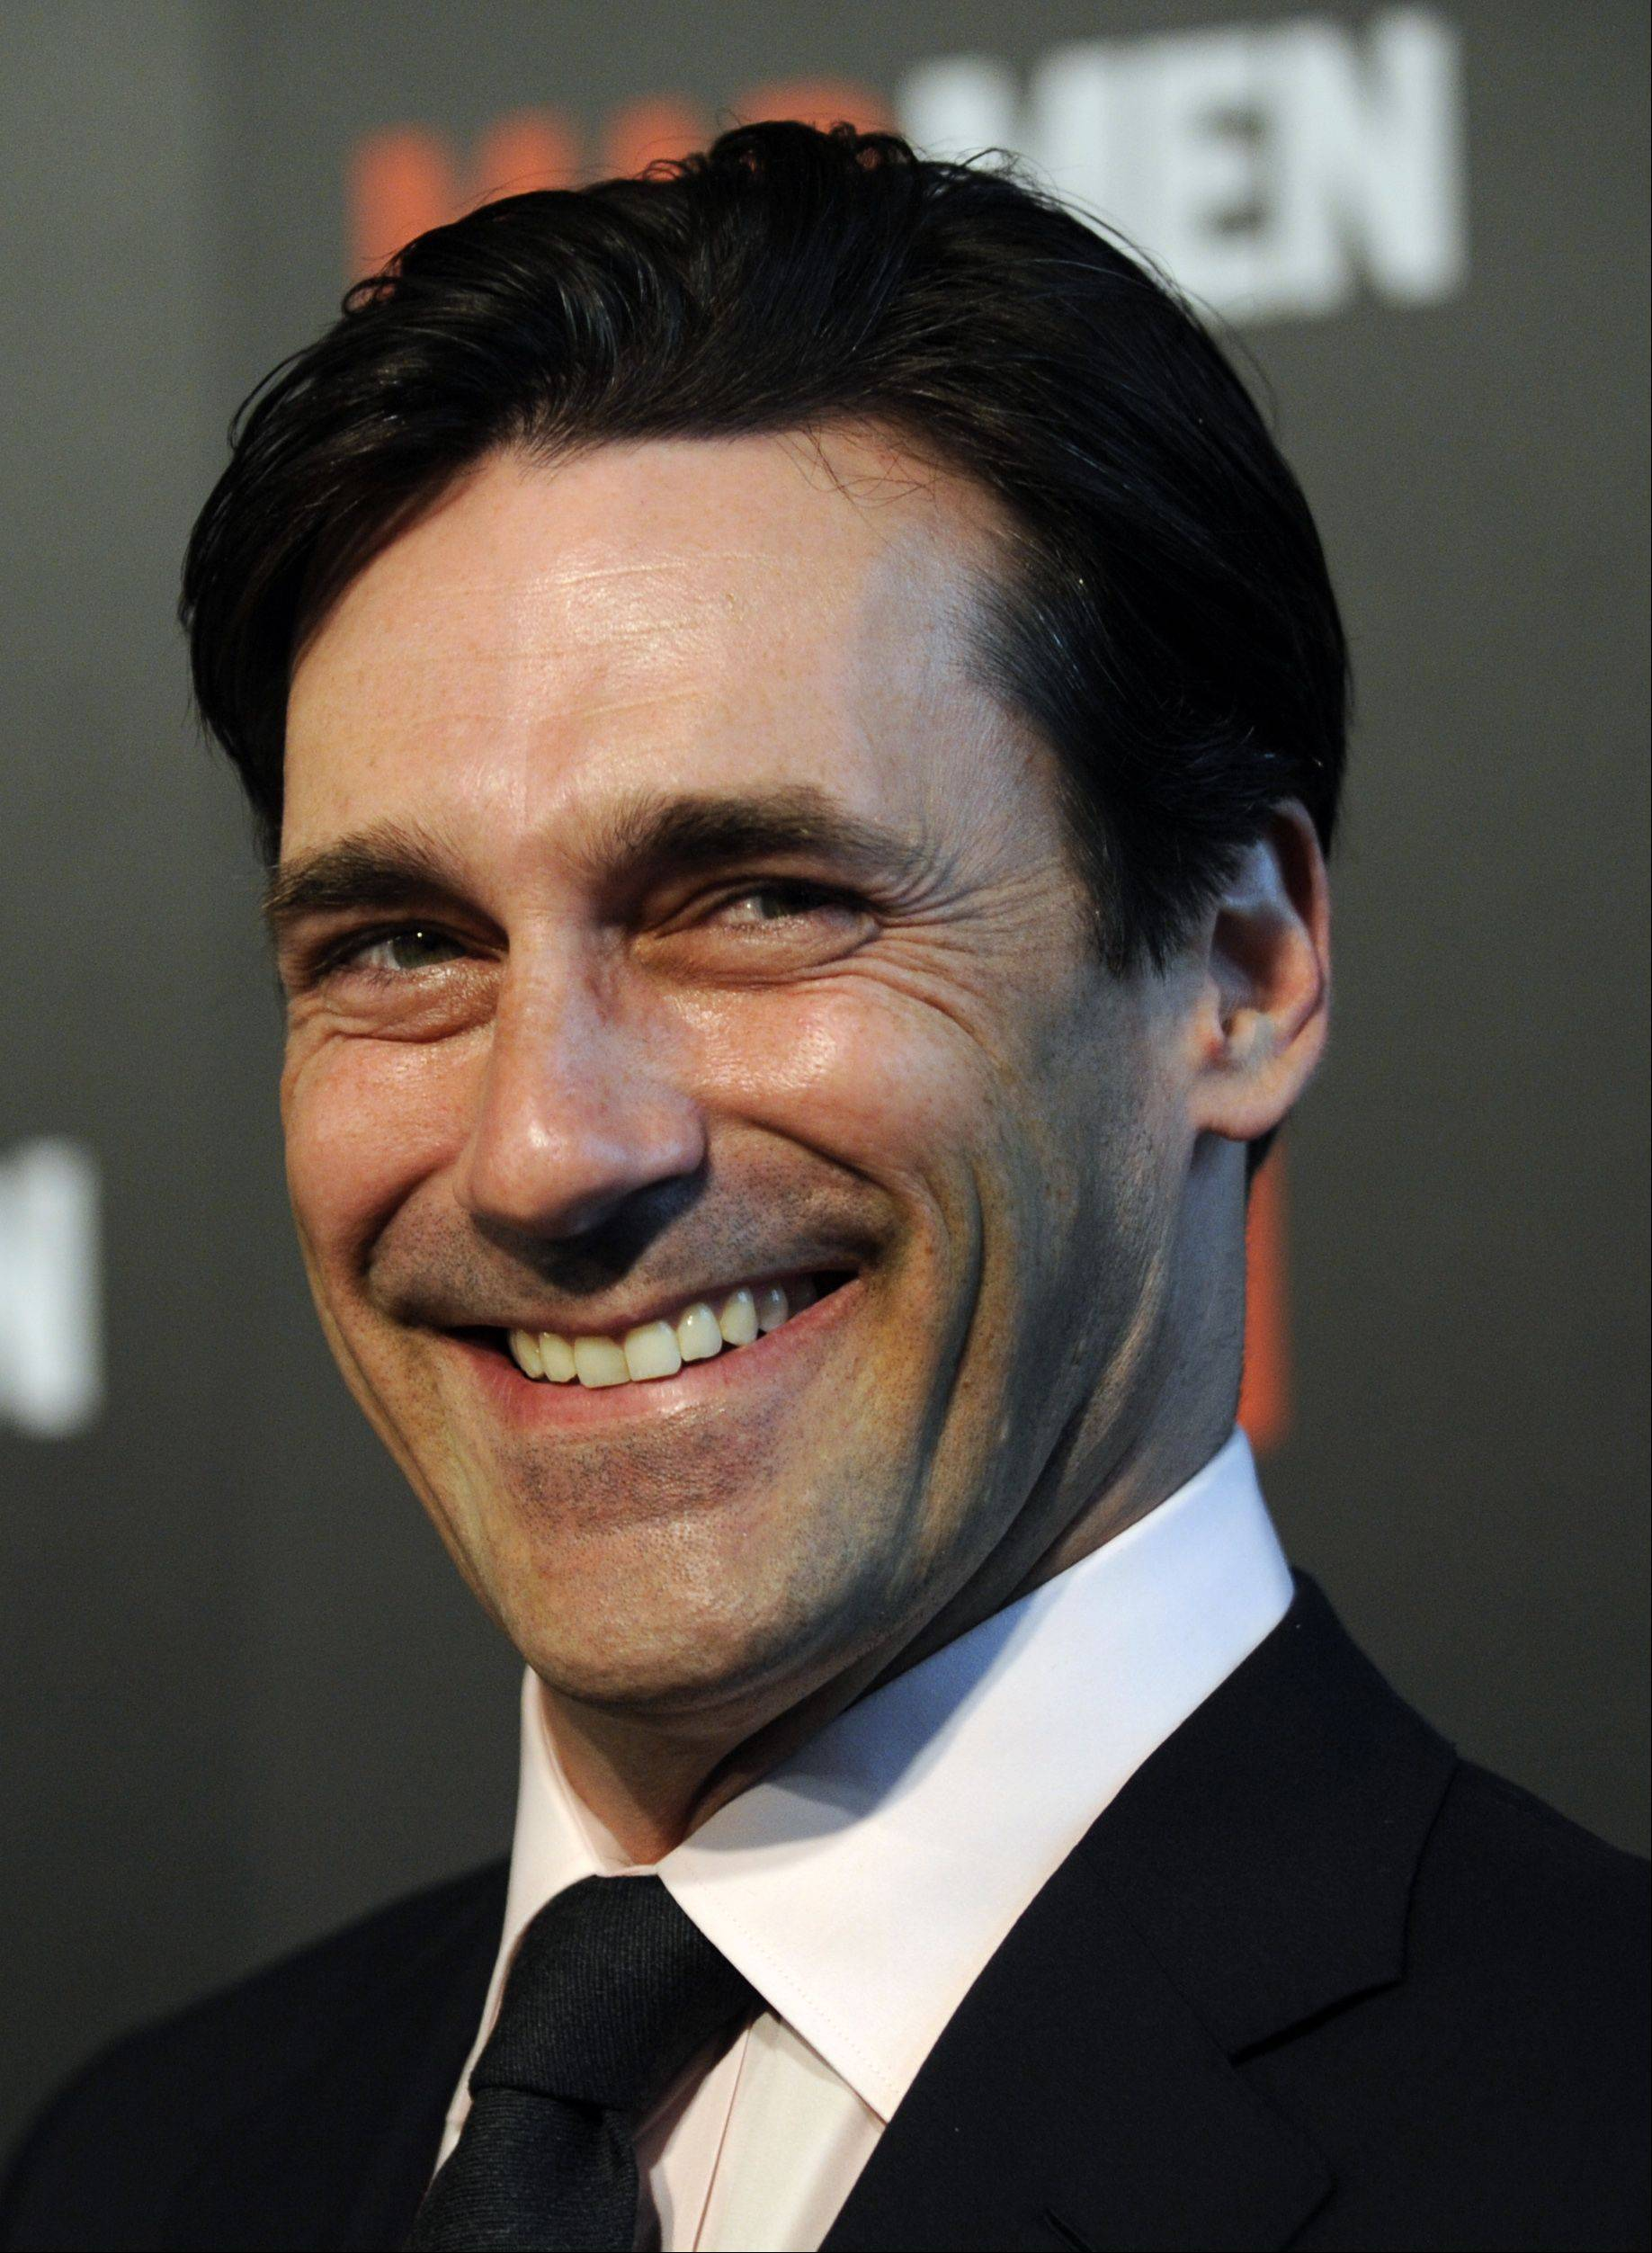 Actor Jon Hamm will be hosting the upcoming ESPY Awards.